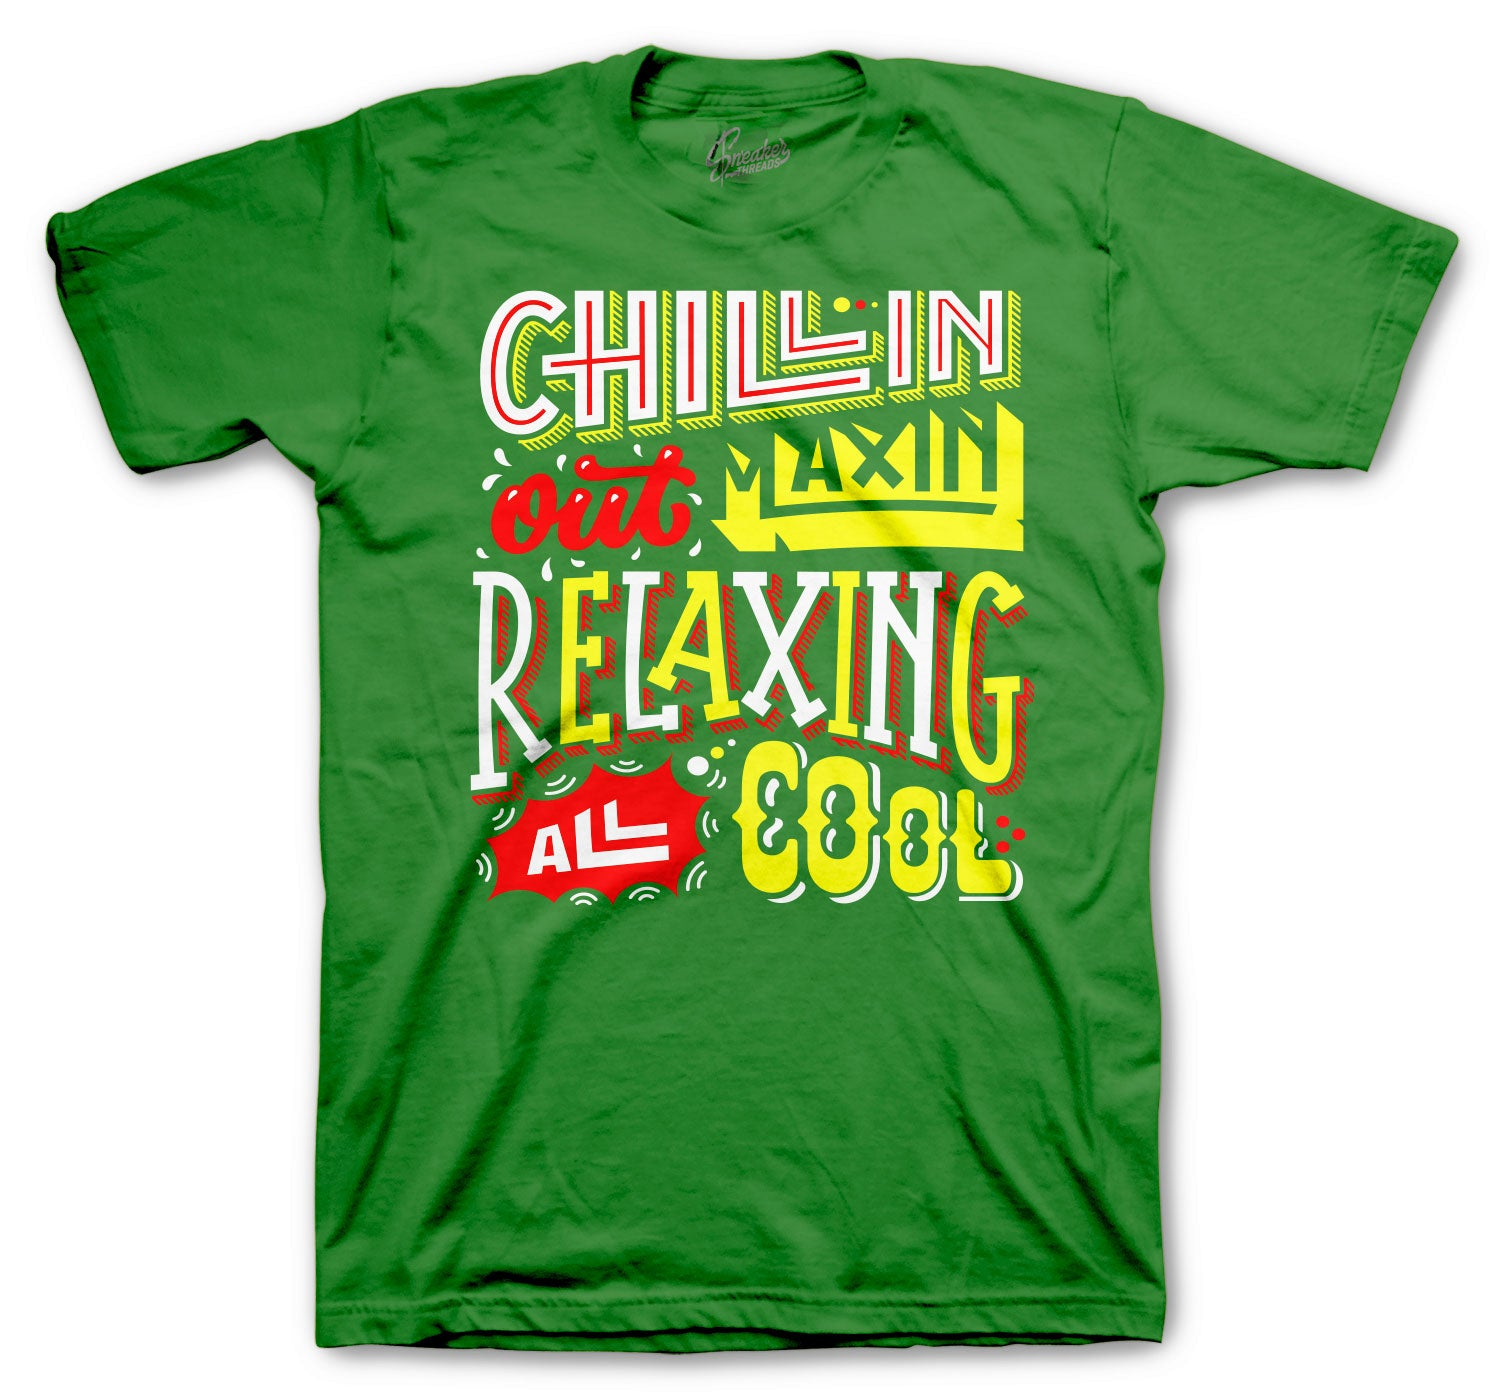 T shirt collection for men designed to match the Jordan 4 rasta sneaker collection